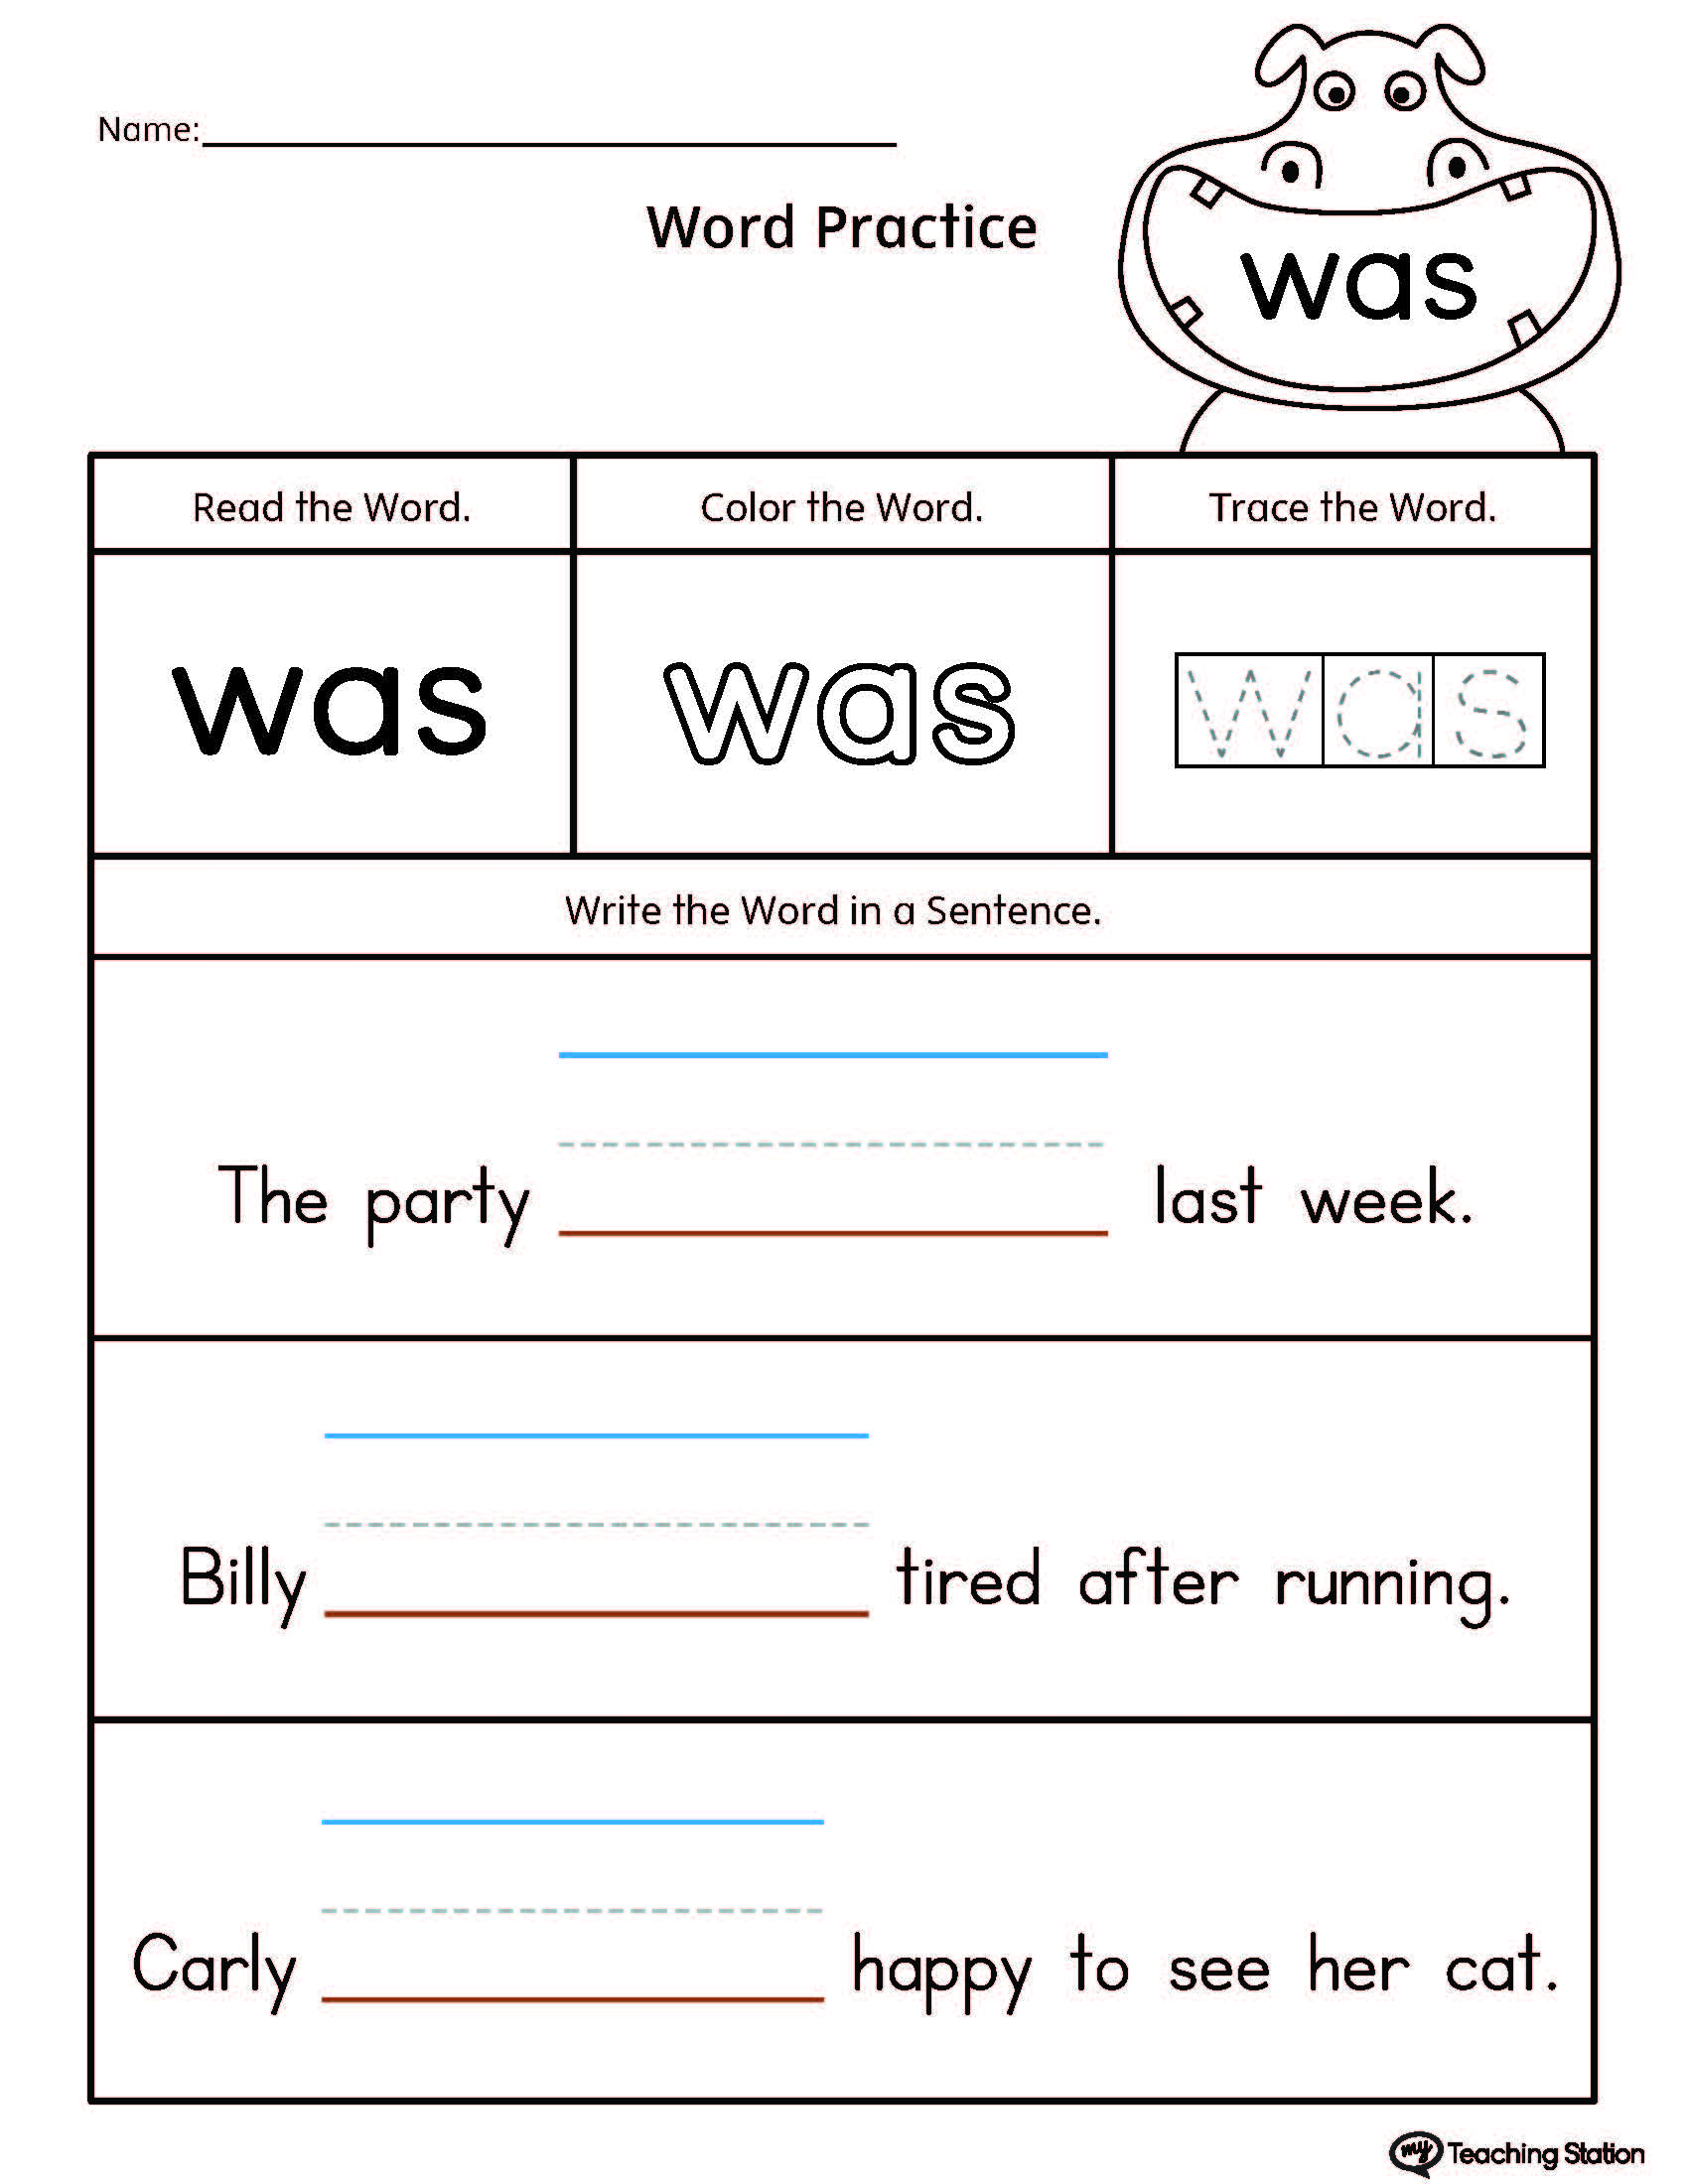 Worksheet Sentences Using Sight Words build sentences using sight word was myteachingstation com was